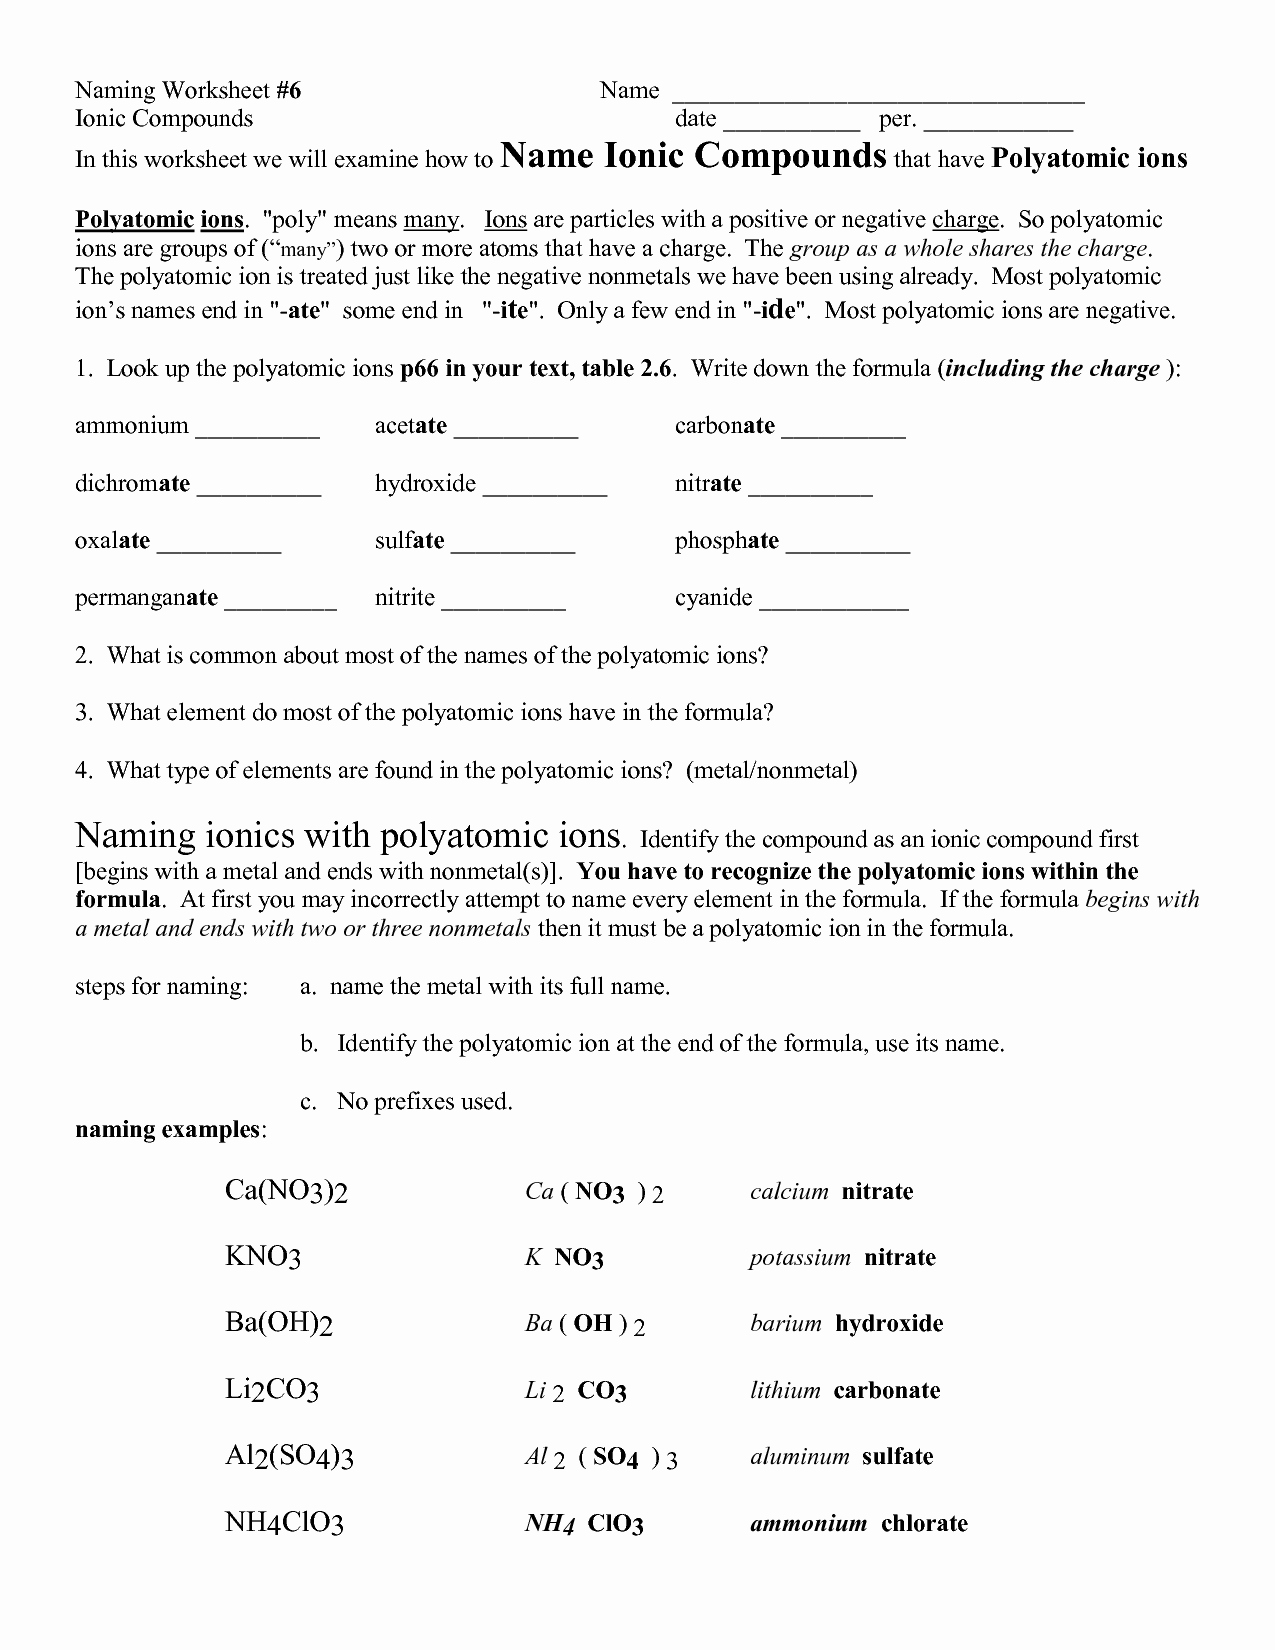 50 Polyatomic Ions Worksheet Answers